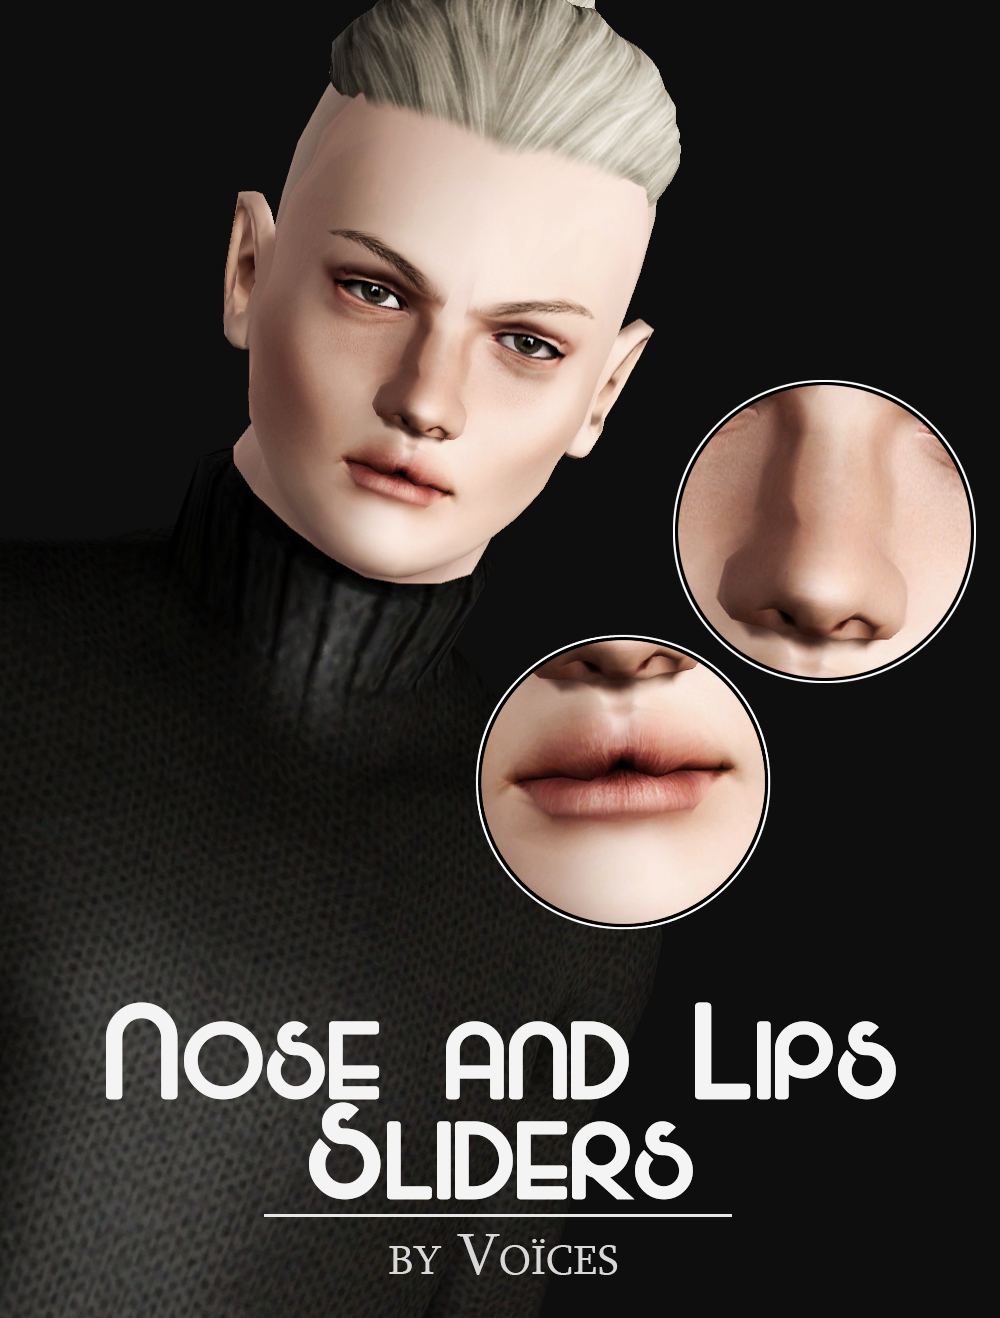 Nose and Lips Sliders by Voices